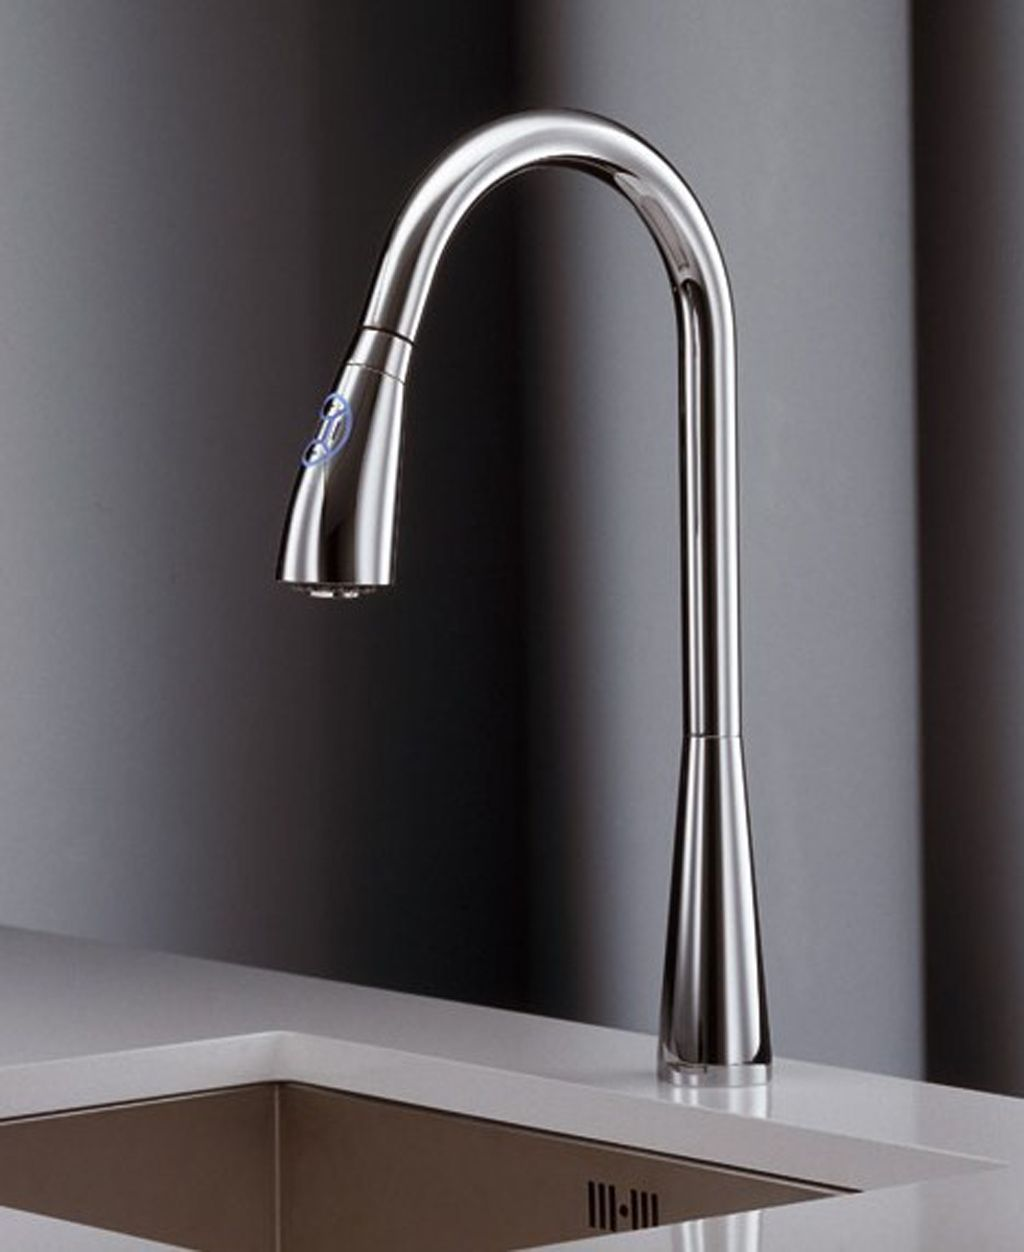 Gentil The Modern Kitchen Faucets Is Minimalist And Pure Design, With Sometimes  Daring Combinations.